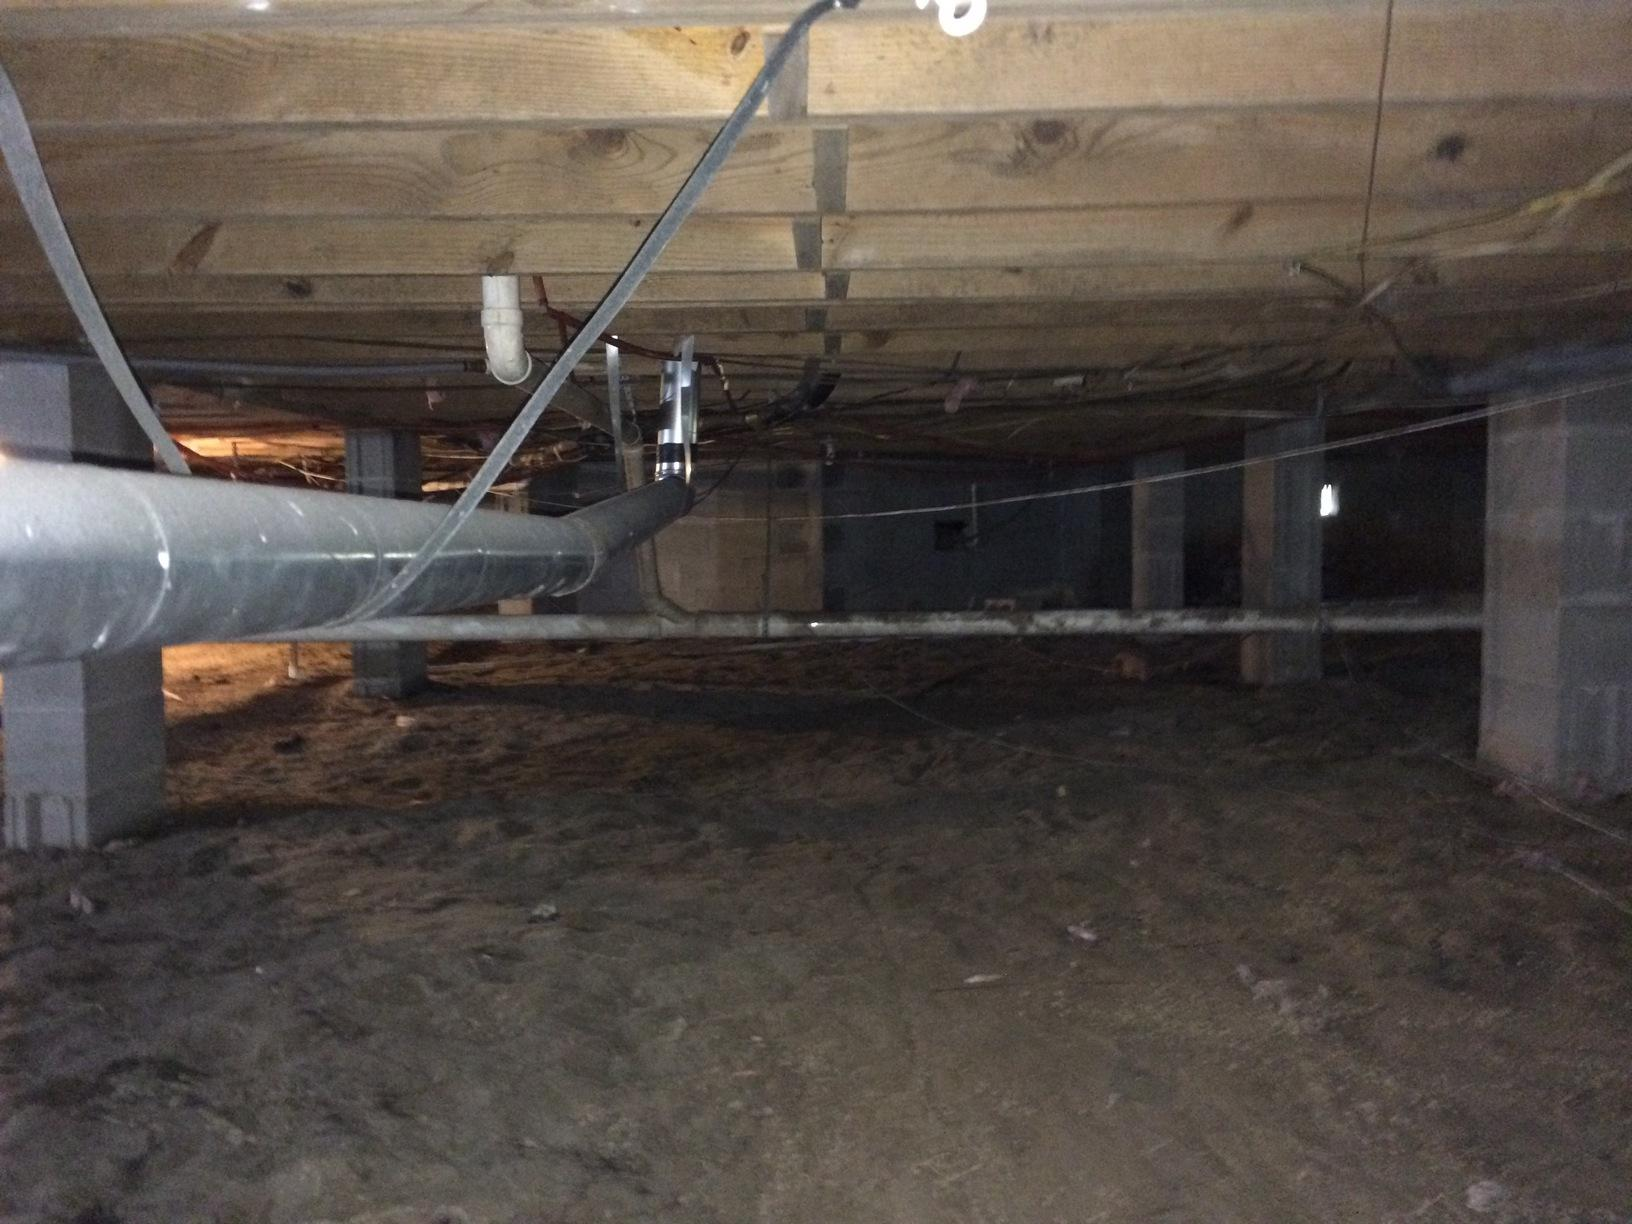 A Complete Crawlspace Transformation - Before Photo